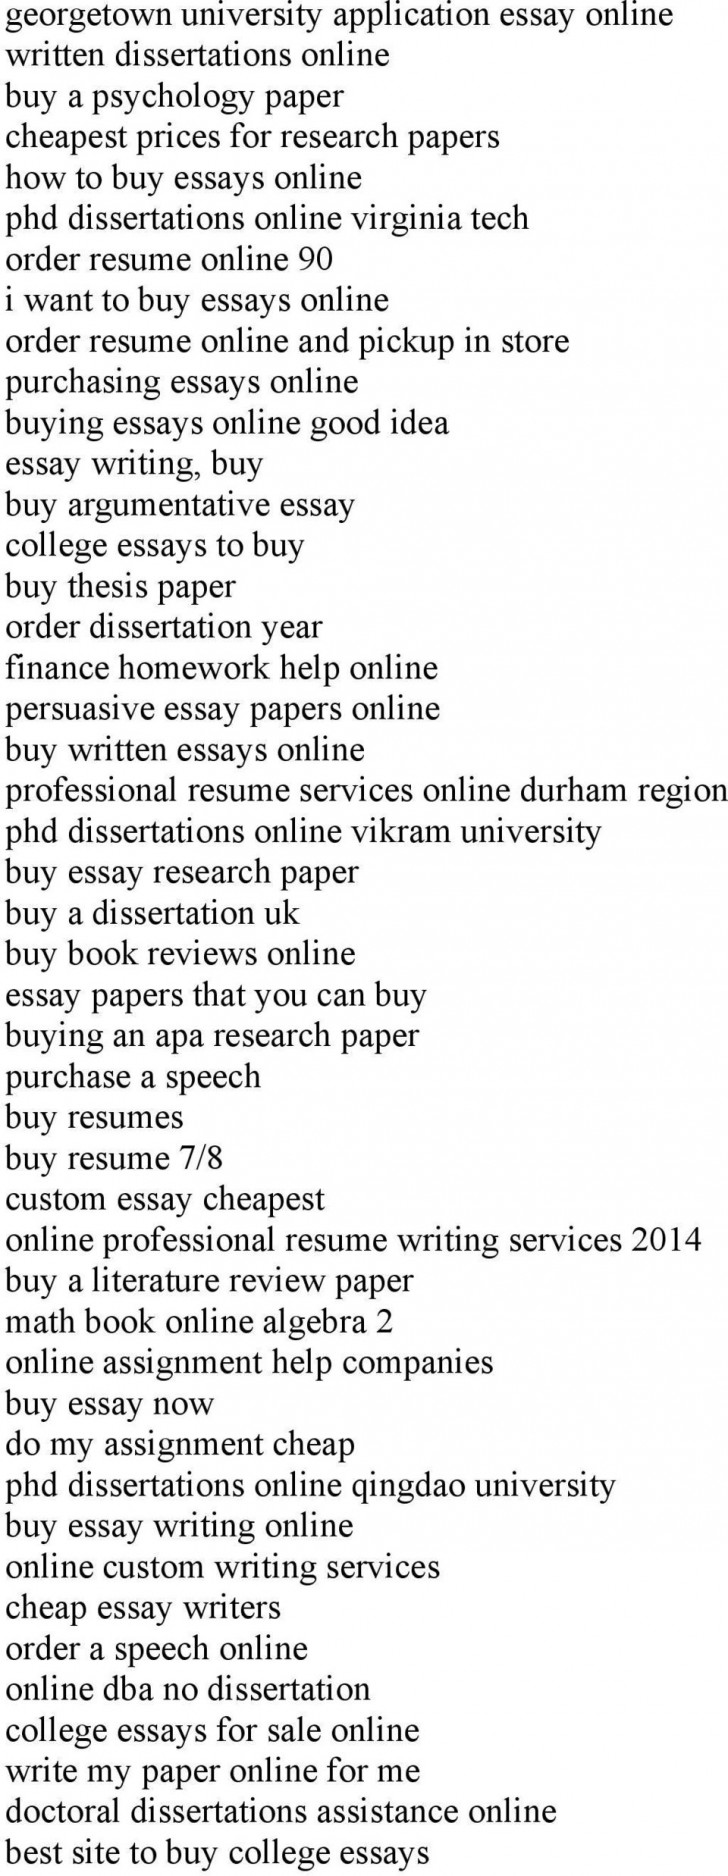 004 Research Paper Buying Page 4 Best A Behaviour Online Behavior Impulse Papers 728